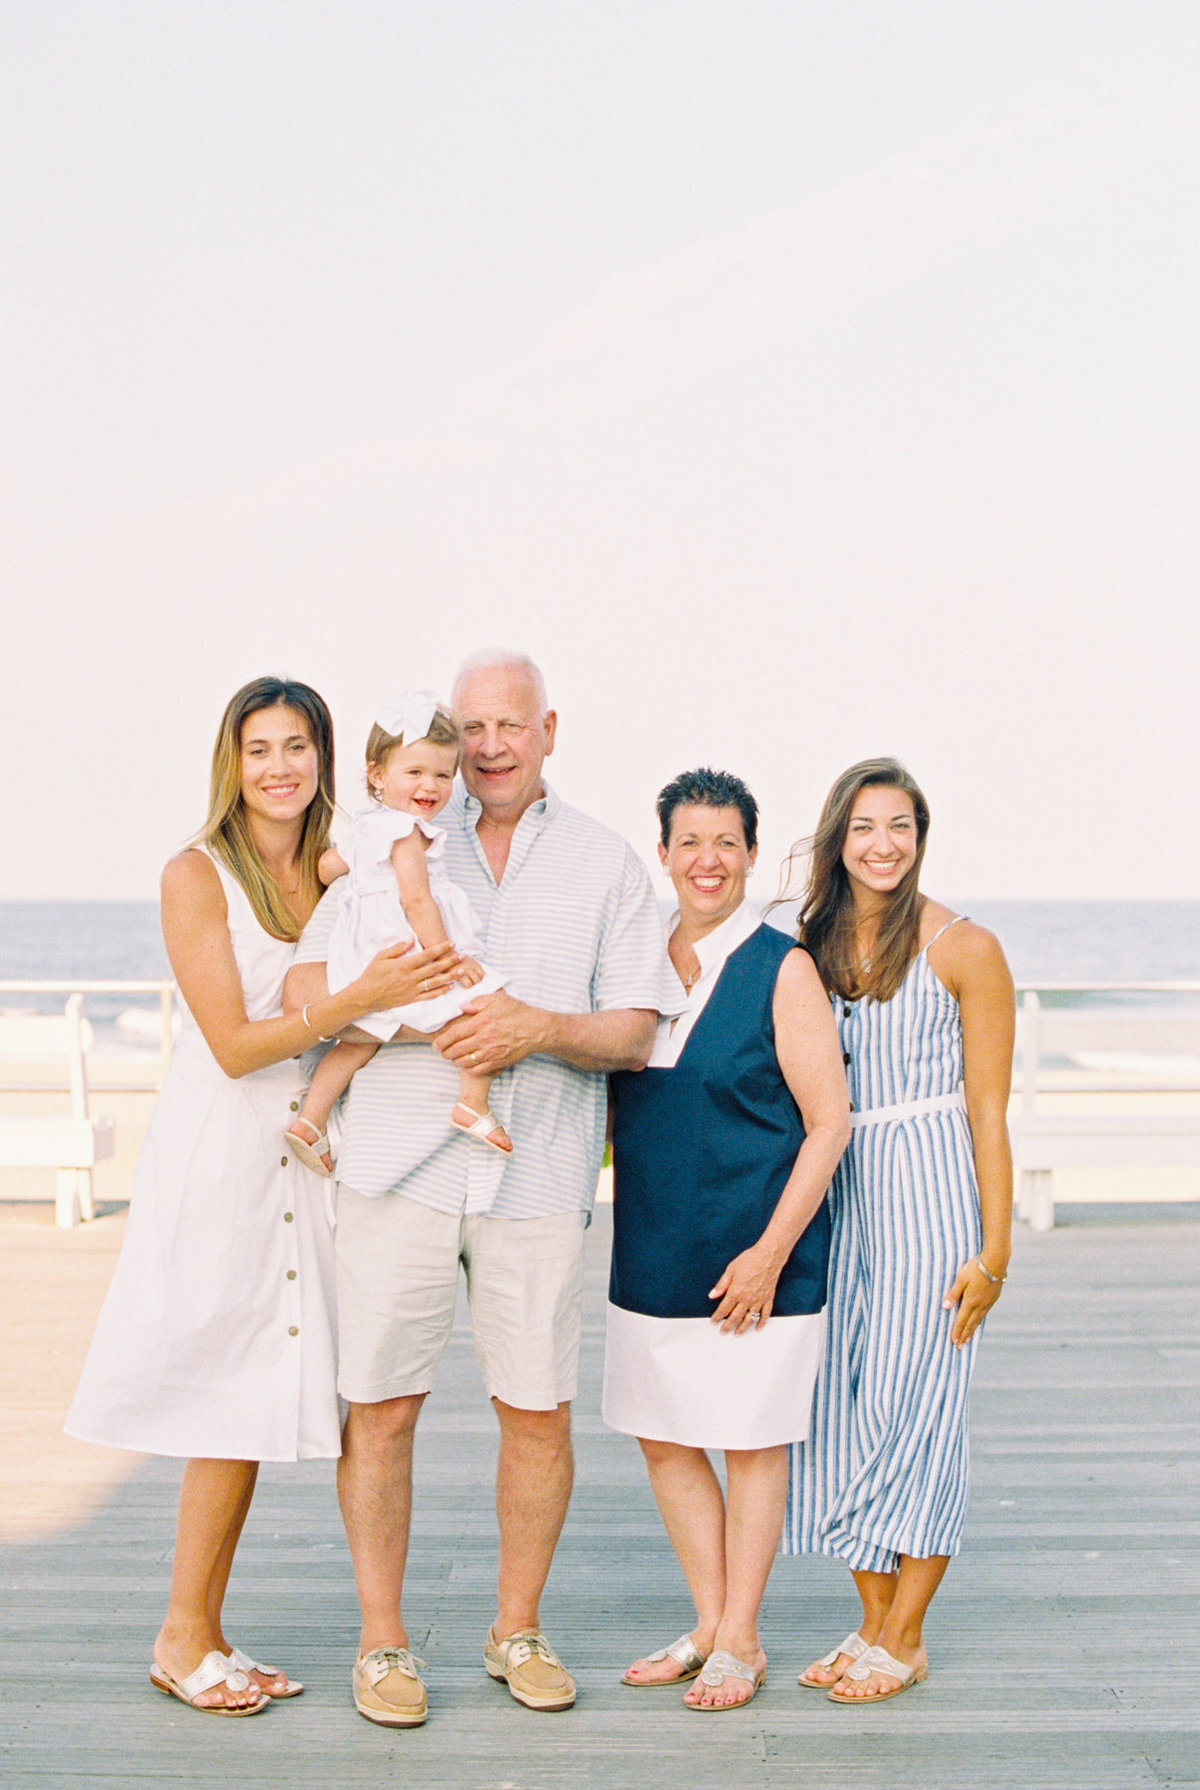 Michelle Behre Photography NJ Fine Art Photographer Seaside Family Lifestyle Family Portrait Session in Avon-by-the-Sea-108